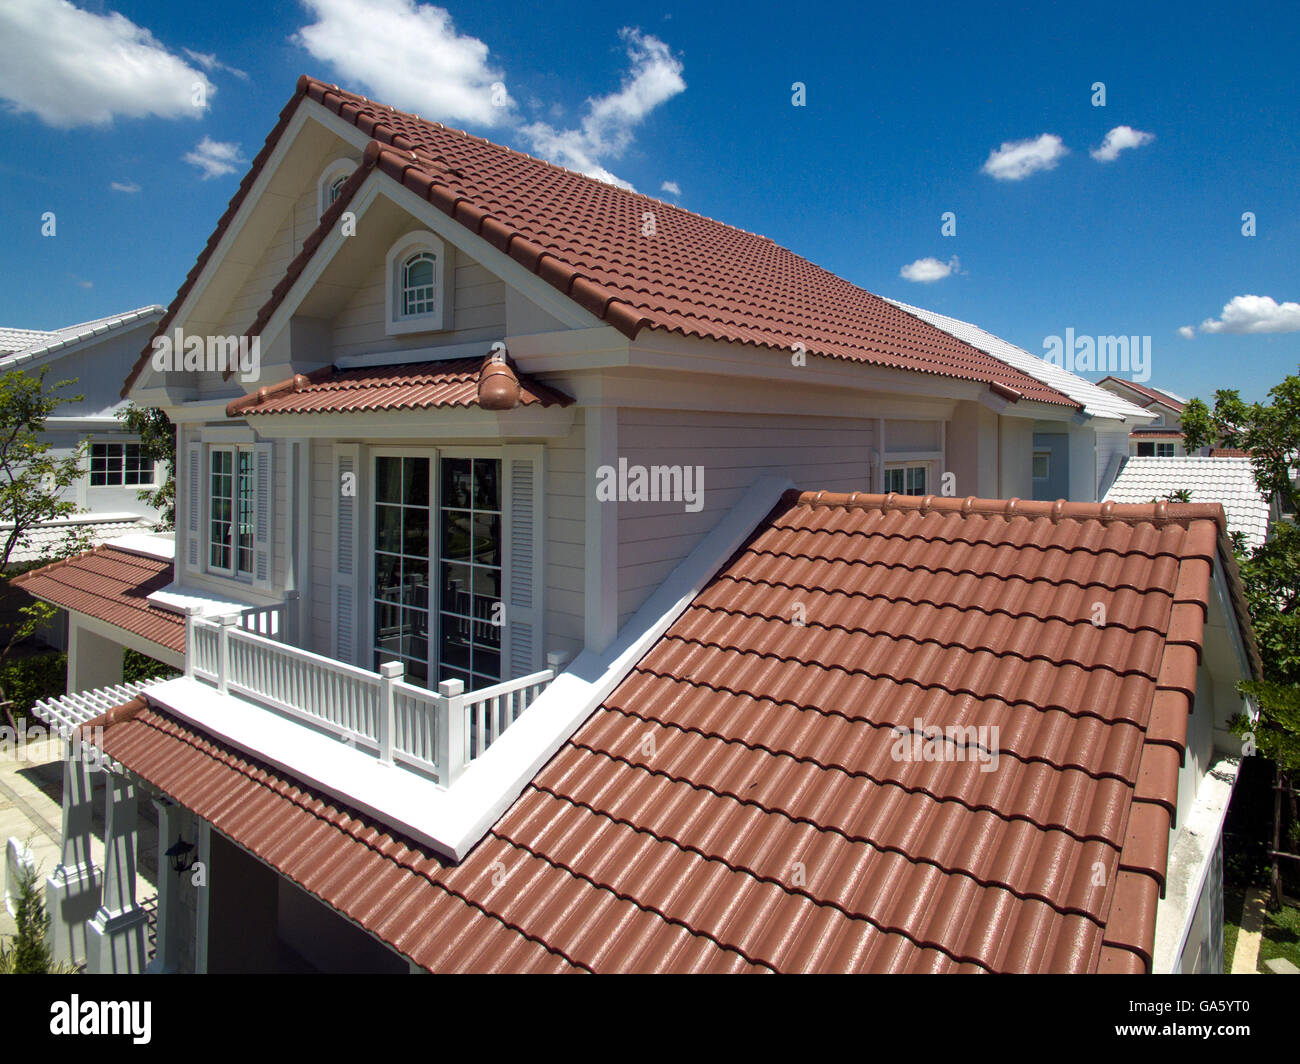 House Roofs tiles, new styles and colors Stock Photo: 109540368 - Alamy